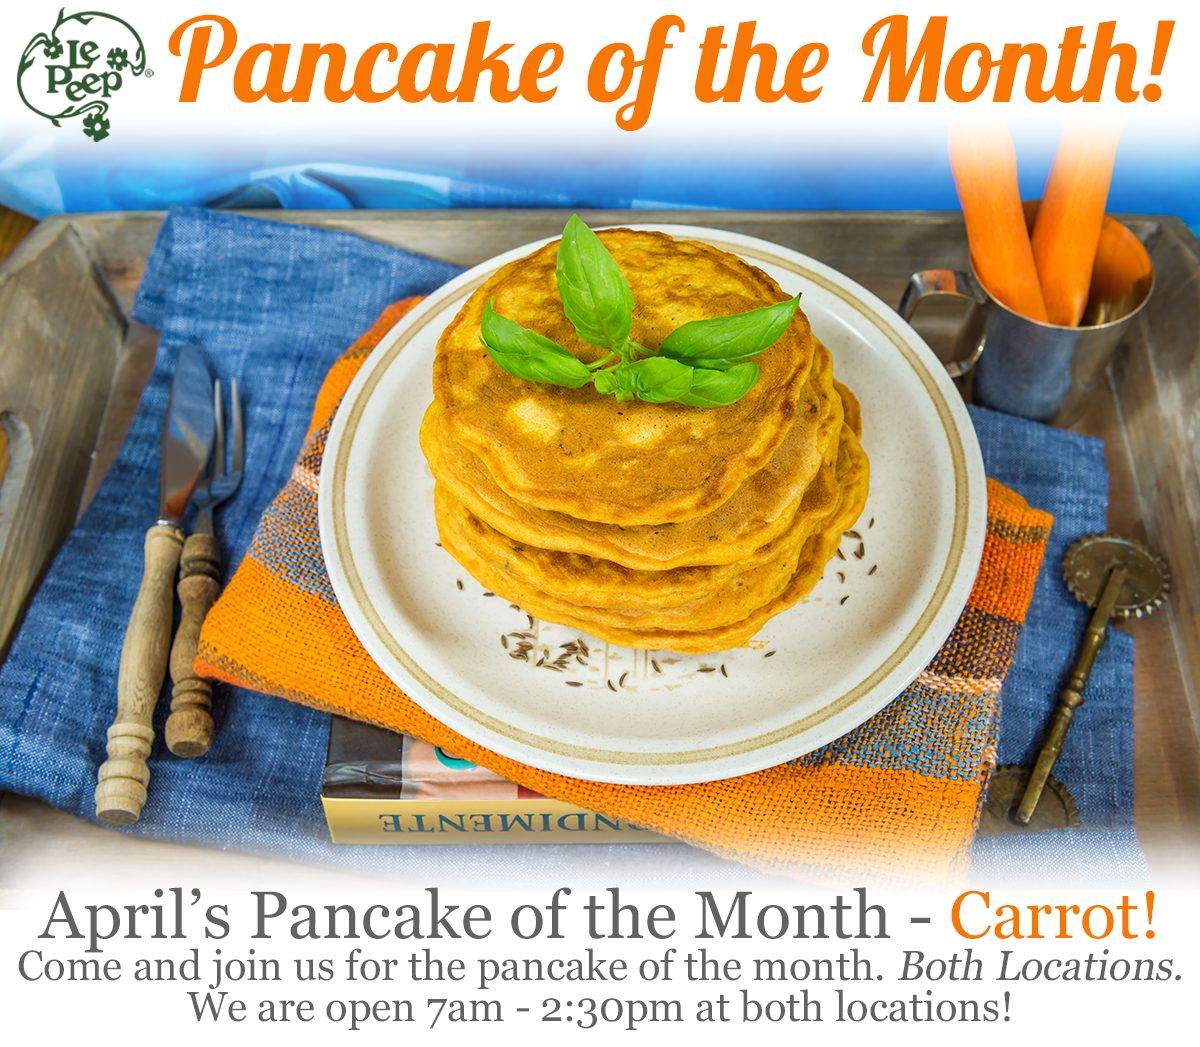 pancake of the month - Carrot!